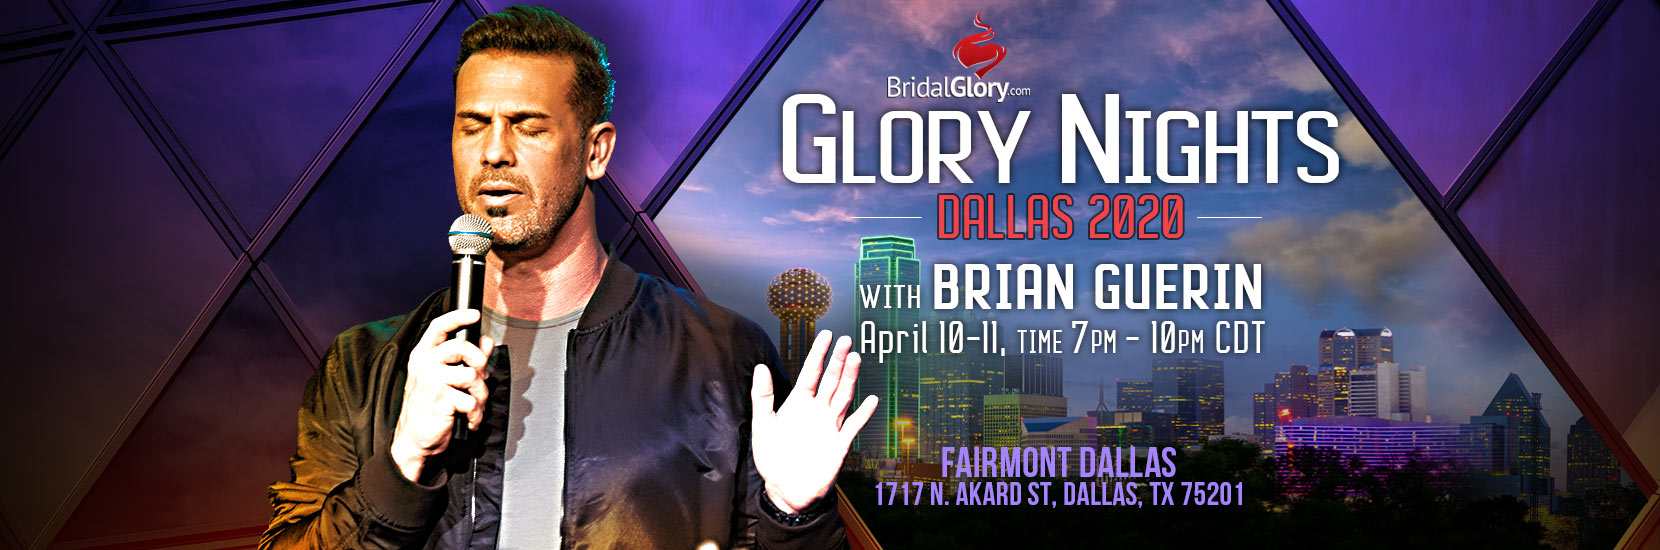 Glory Nights DALLAS